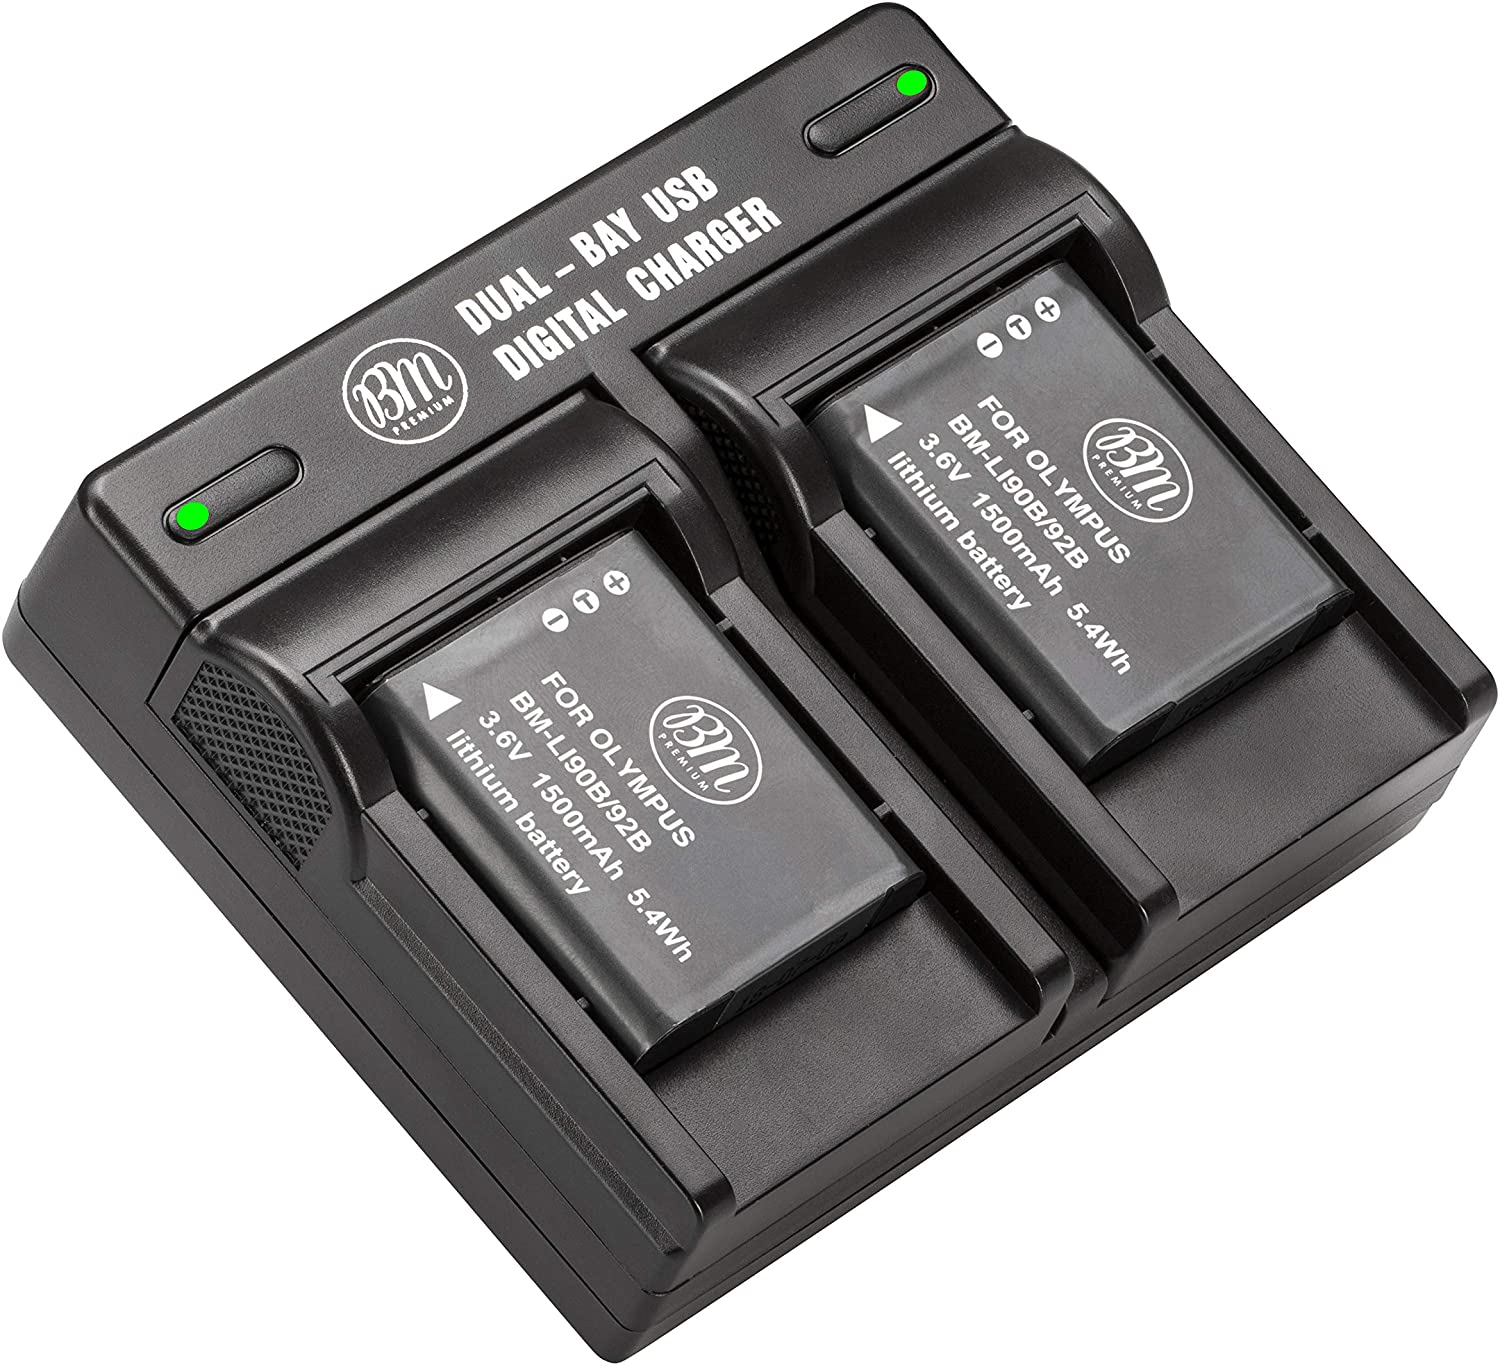 BM Premium 2 LI-90B, LI-92B Batteries and Dual Battery Charger for Olympus Tough TG-6, TG-5, TG-Tracker, Tough SH-1, SH-2, SP100 IHS, Tough TG-1 iHS, TG-2 iHS, TG-3, TG-4, SH-50, SH-60, XZ-2 iHS